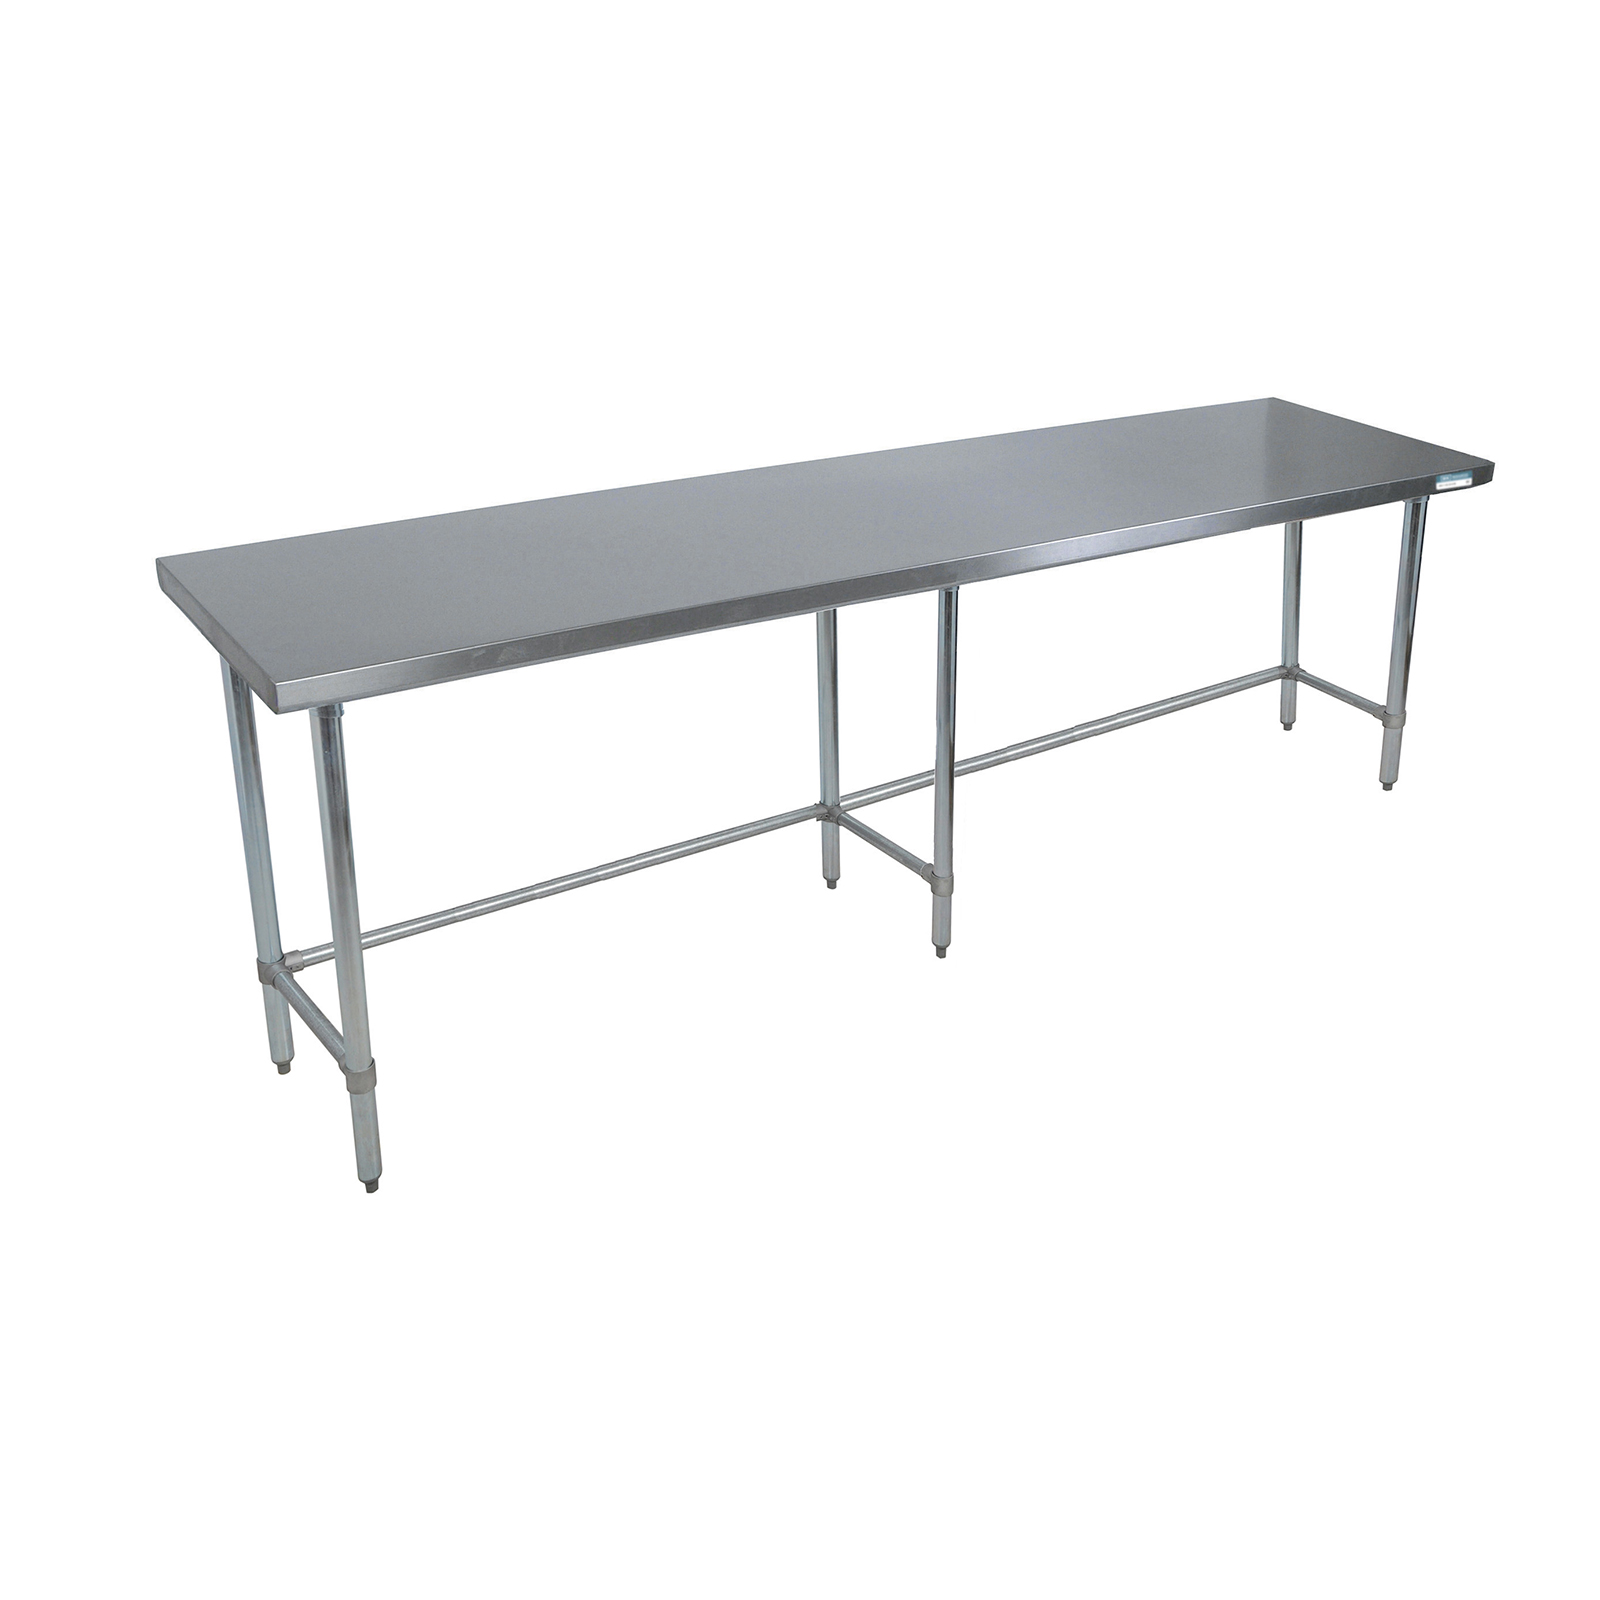 BK Resources VTTOB-9630 work table,  85